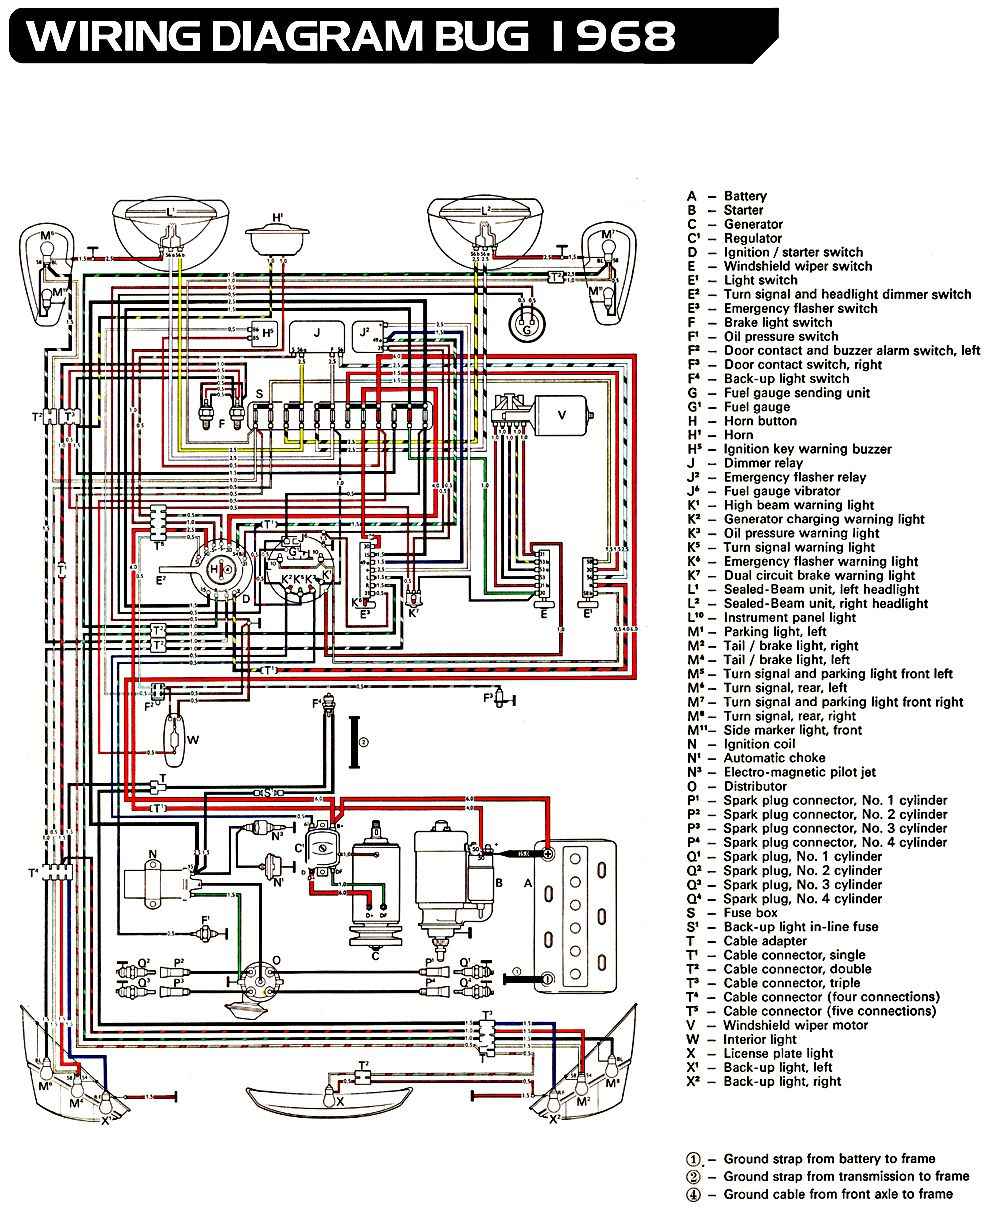 73 Vw Beetle Wiring Diagram - Rxf.music-city.uk •  Vw New Beetle Wiring Schematic on vw beetle specifications, vw beetle radio, vw beetle hood, vw beetle forum, vw beetle shop manual, vw beetle service manual, vw beetle pickup, vw beetle gauges, vw beetle diagram, vw beetle fuses, vw beetle controls, vw beetle seat, vw beetle bug, vw beetle headlights, vw beetle performance, vw beetle fuel pump relay, vw beetle parts list, vw beetle battery, vw beetle starter, vw beetle throttle position sensor,